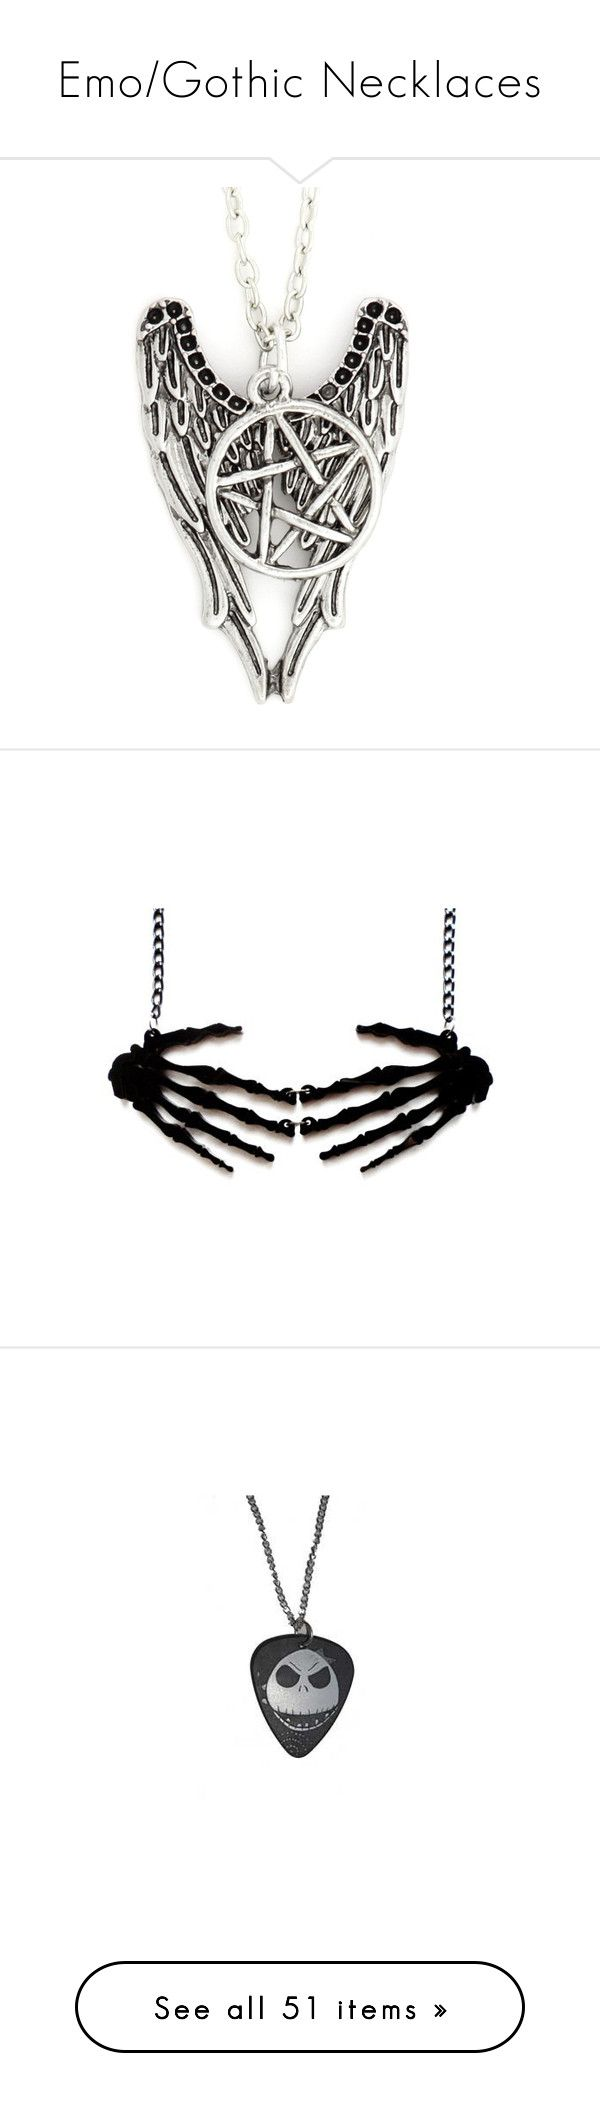 """Emo/Gothic Necklaces"" by deadovertrouble666 ❤ liked on Polyvore featuring jewelry, accessories, necklaces, pentagram pendant, pentagram jewelry, metal pendant, star pendant, silvertone jewelry, goth jewelry and gothic necklace"